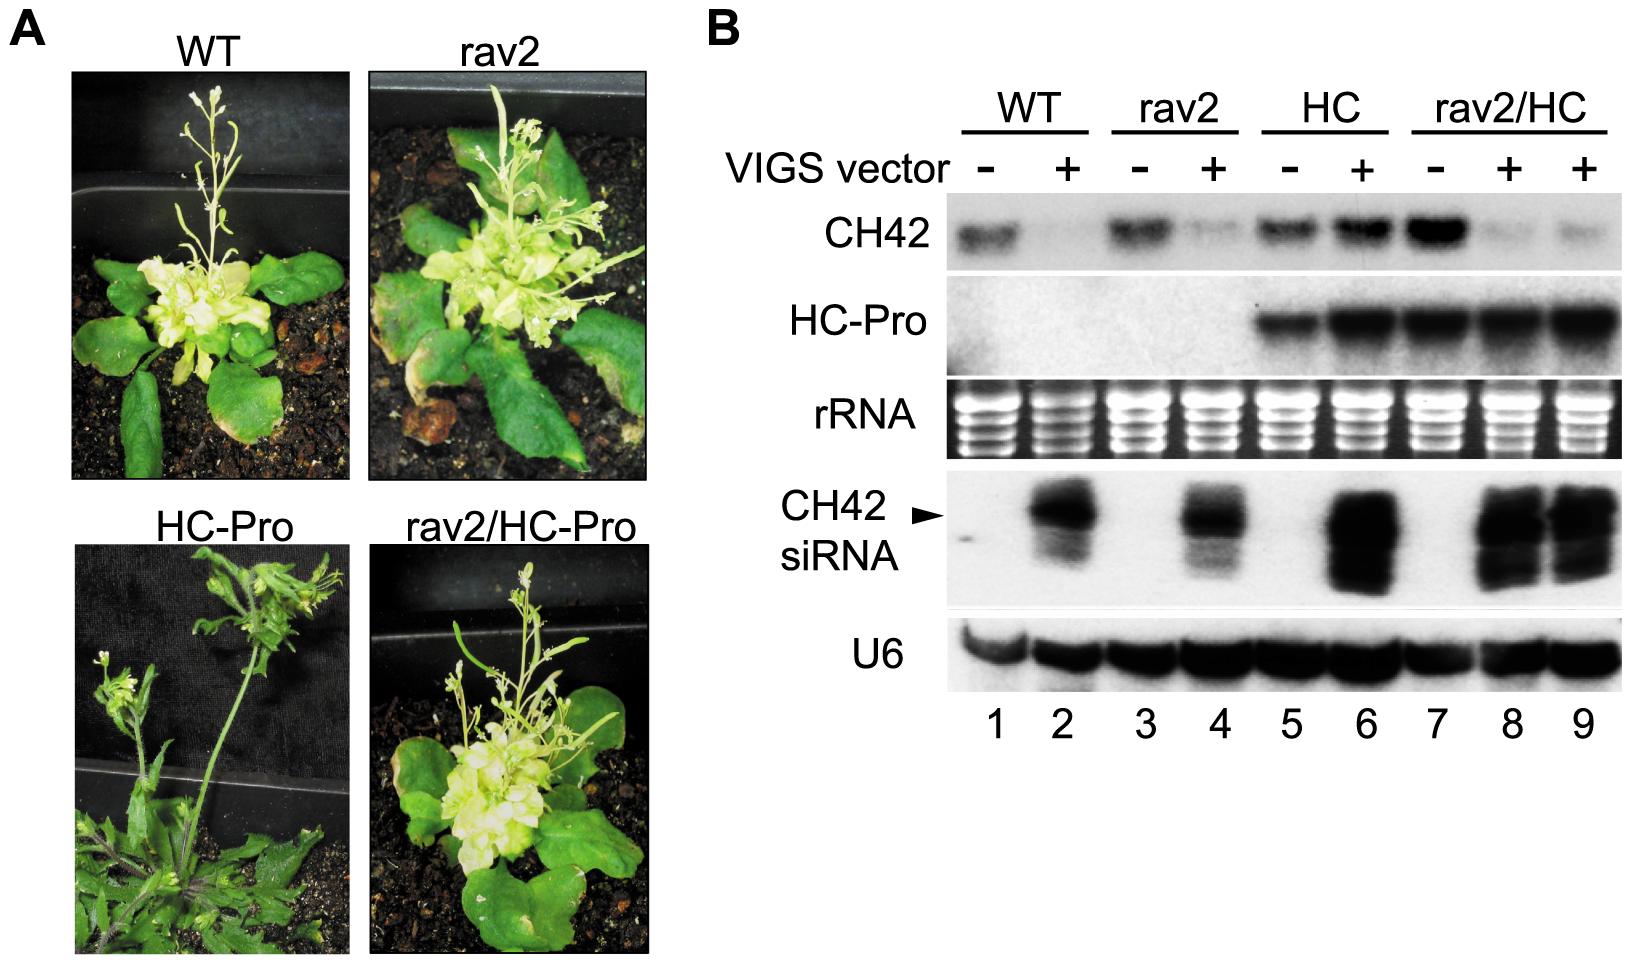 <i>RAV2</i> is Required for HC-Pro Suppression of Virus Induced Gene Silencing (VIGS).